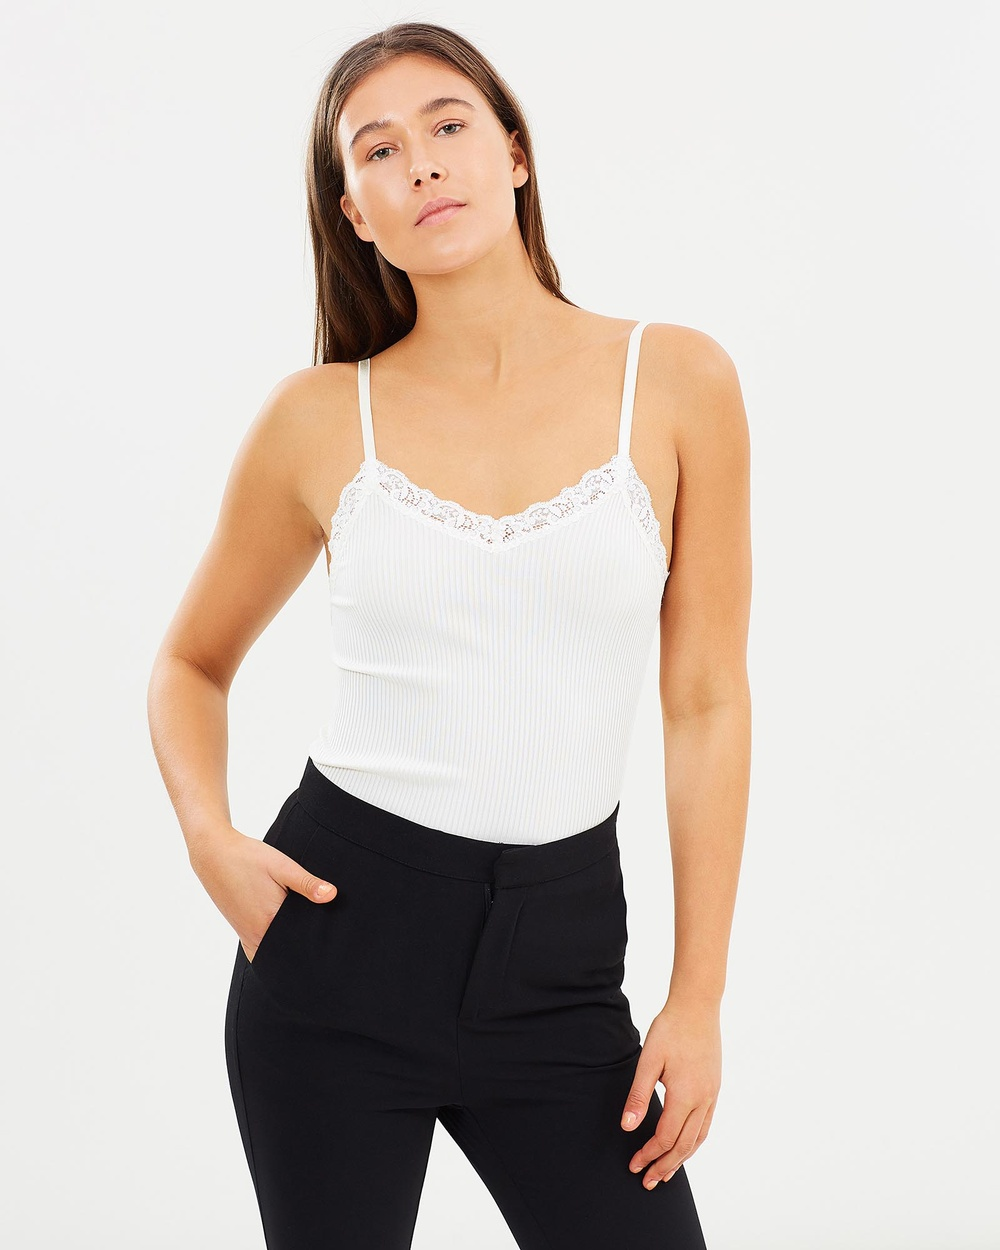 Grace Willow Ella Seamless Lace Cami Tops Cream Ella Seamless Lace Cami